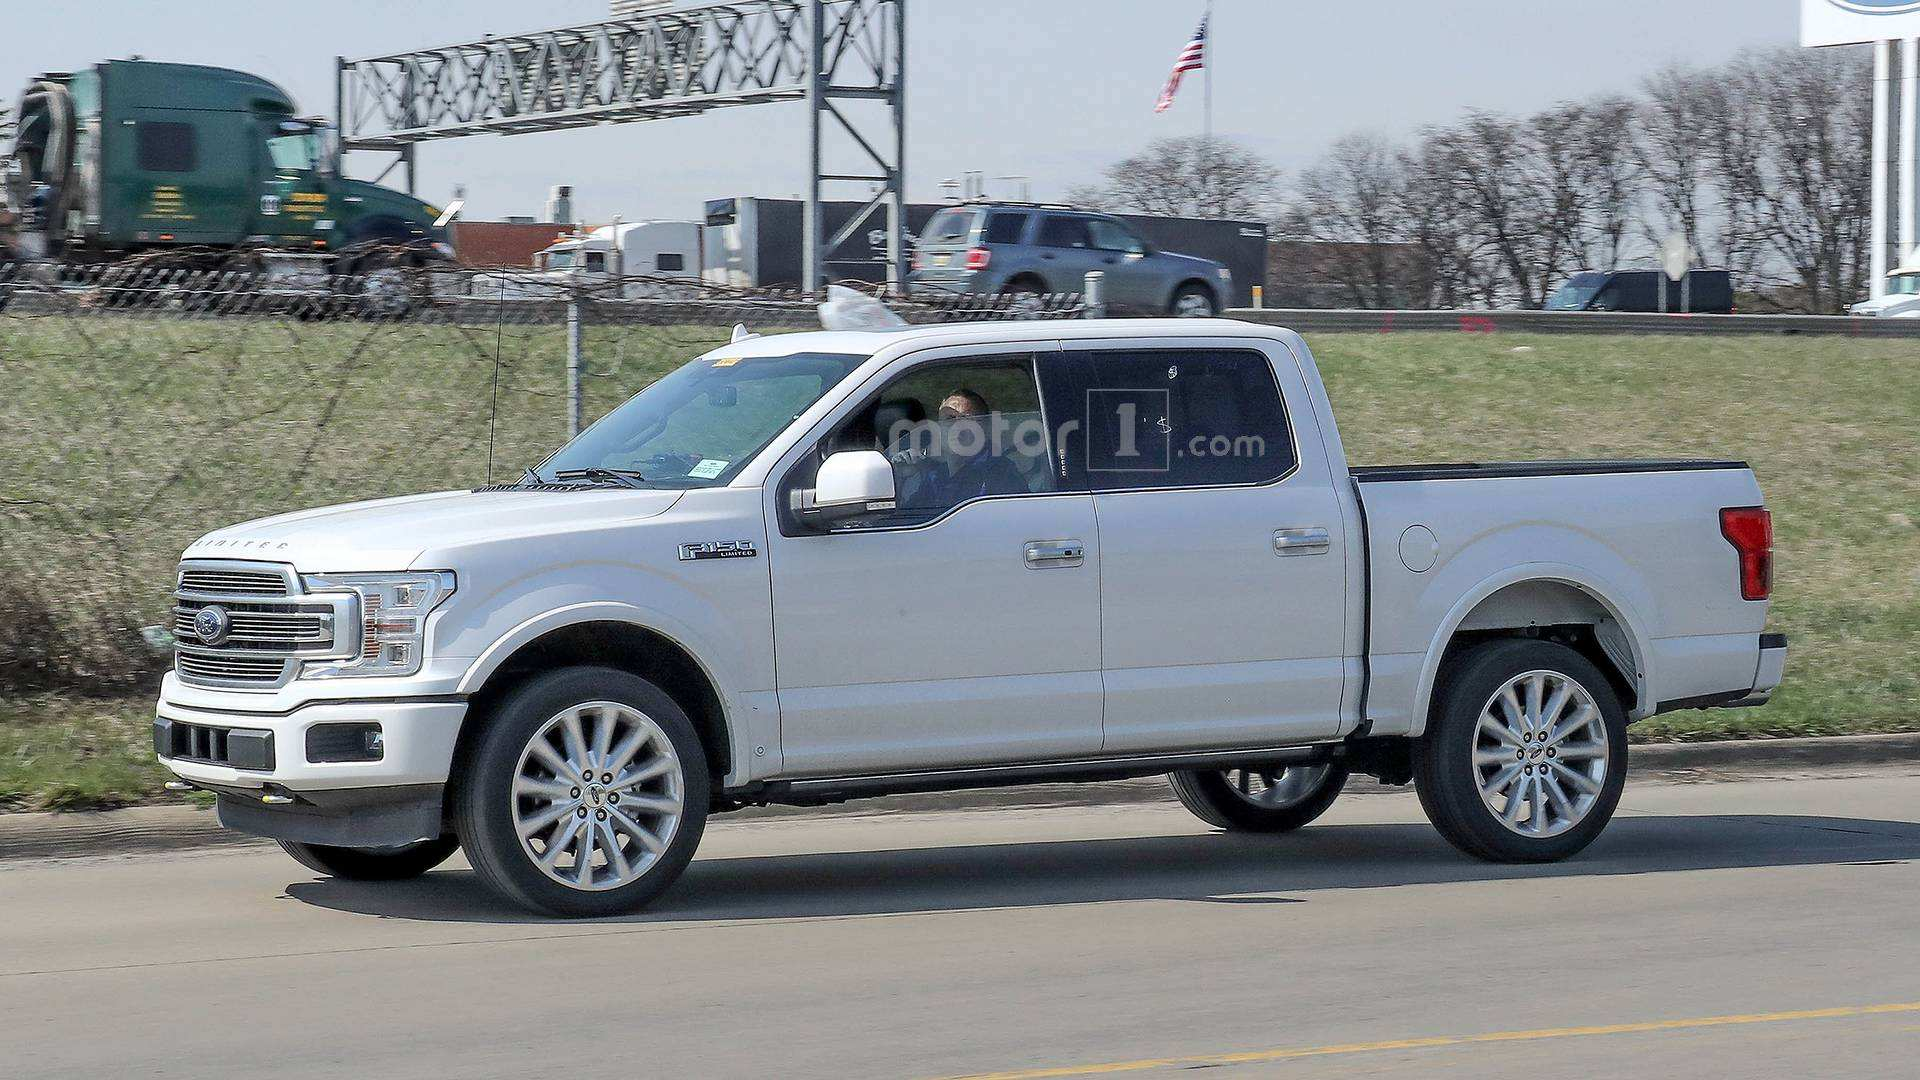 69 All New 2019 Ford F 150 Limited Model